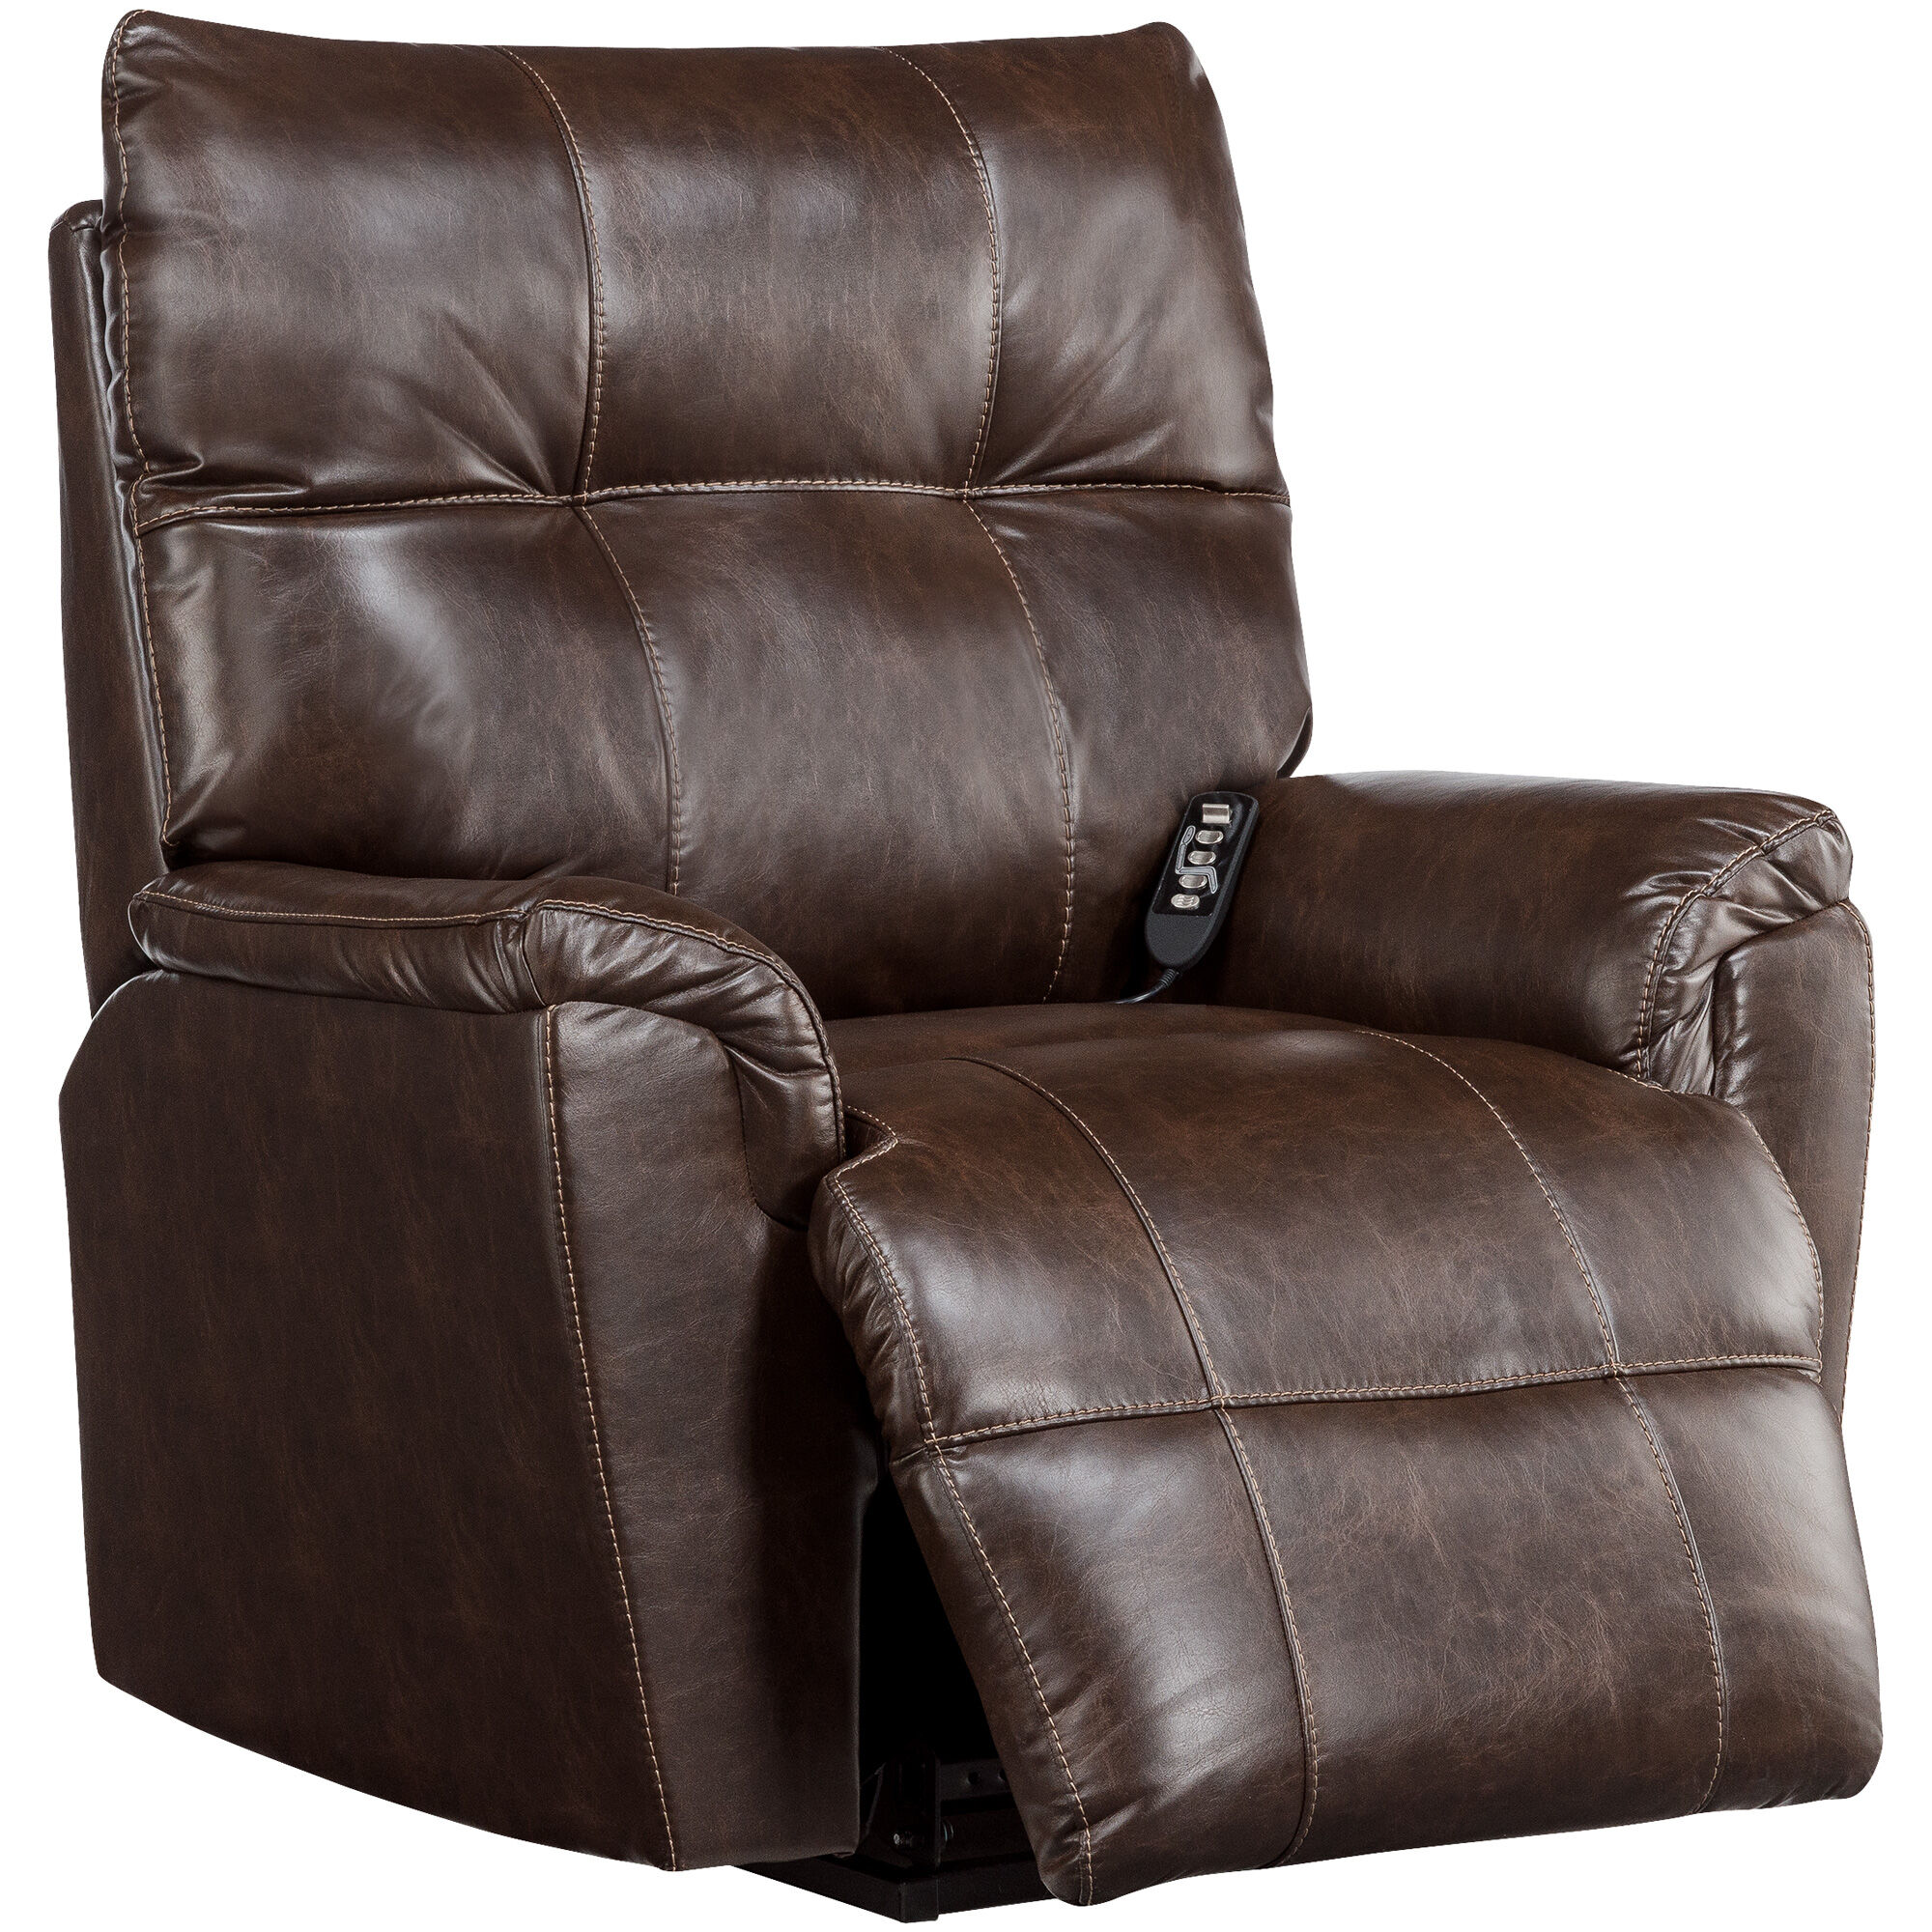 elderly geri is superb electric stand riser uplift pay furniture medicare stairs help power used of does wall mechanism stair size hugger recliners full lift for up chairs home new what recliner seat chair cheap a